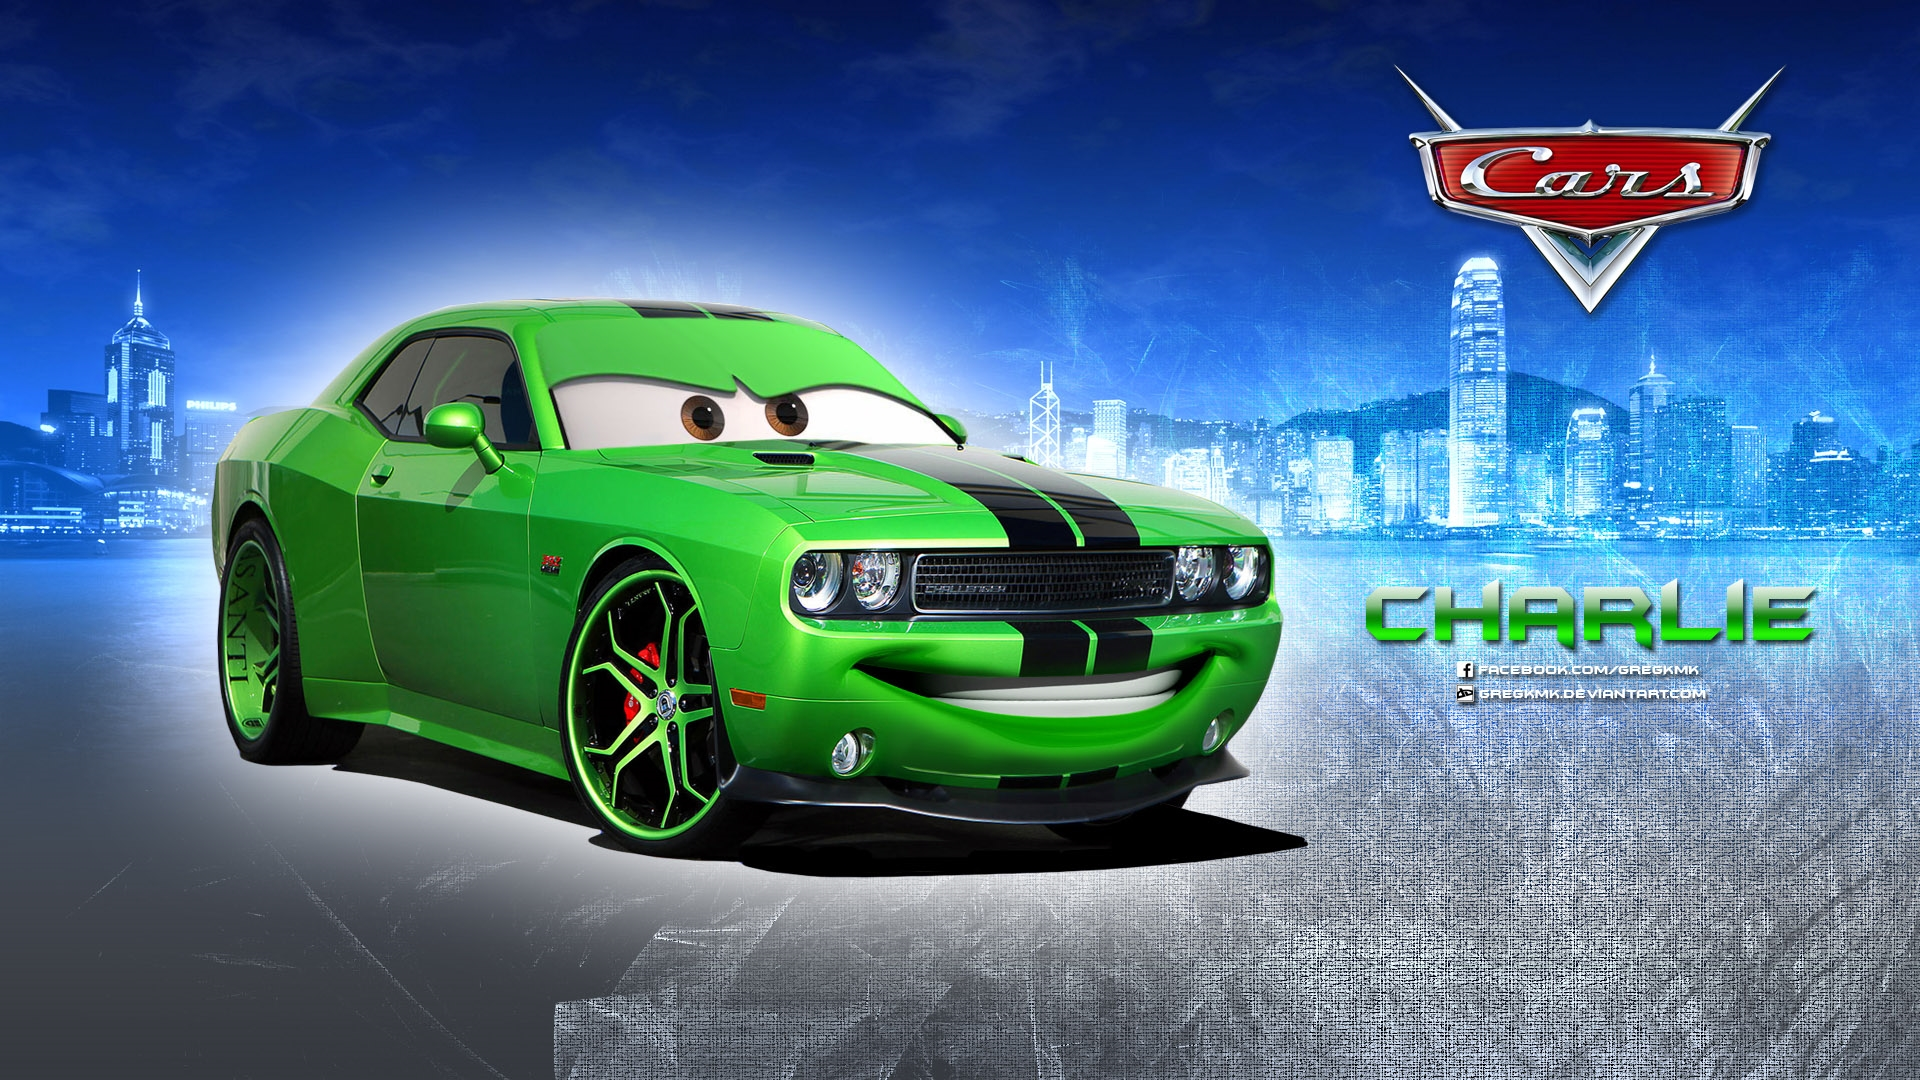 charlie dodge challenger disney pixar cars 1 2 free hd wallpaper